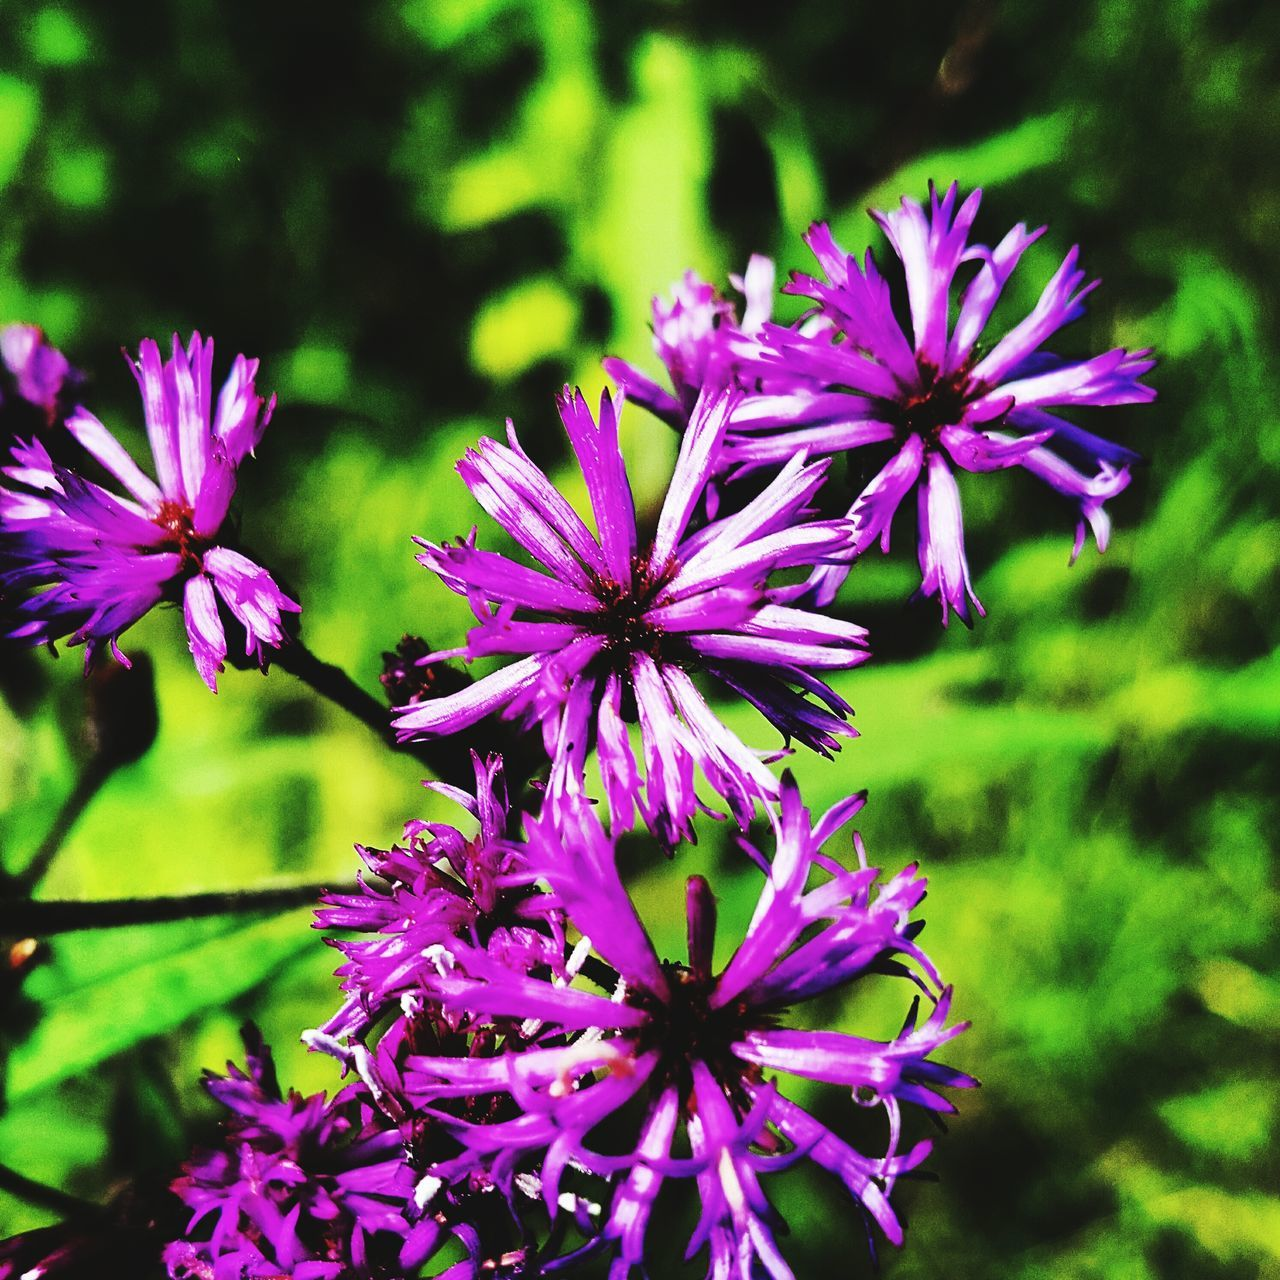 flower, purple, growth, beauty in nature, fragility, nature, petal, plant, no people, freshness, outdoors, blooming, day, flower head, close-up